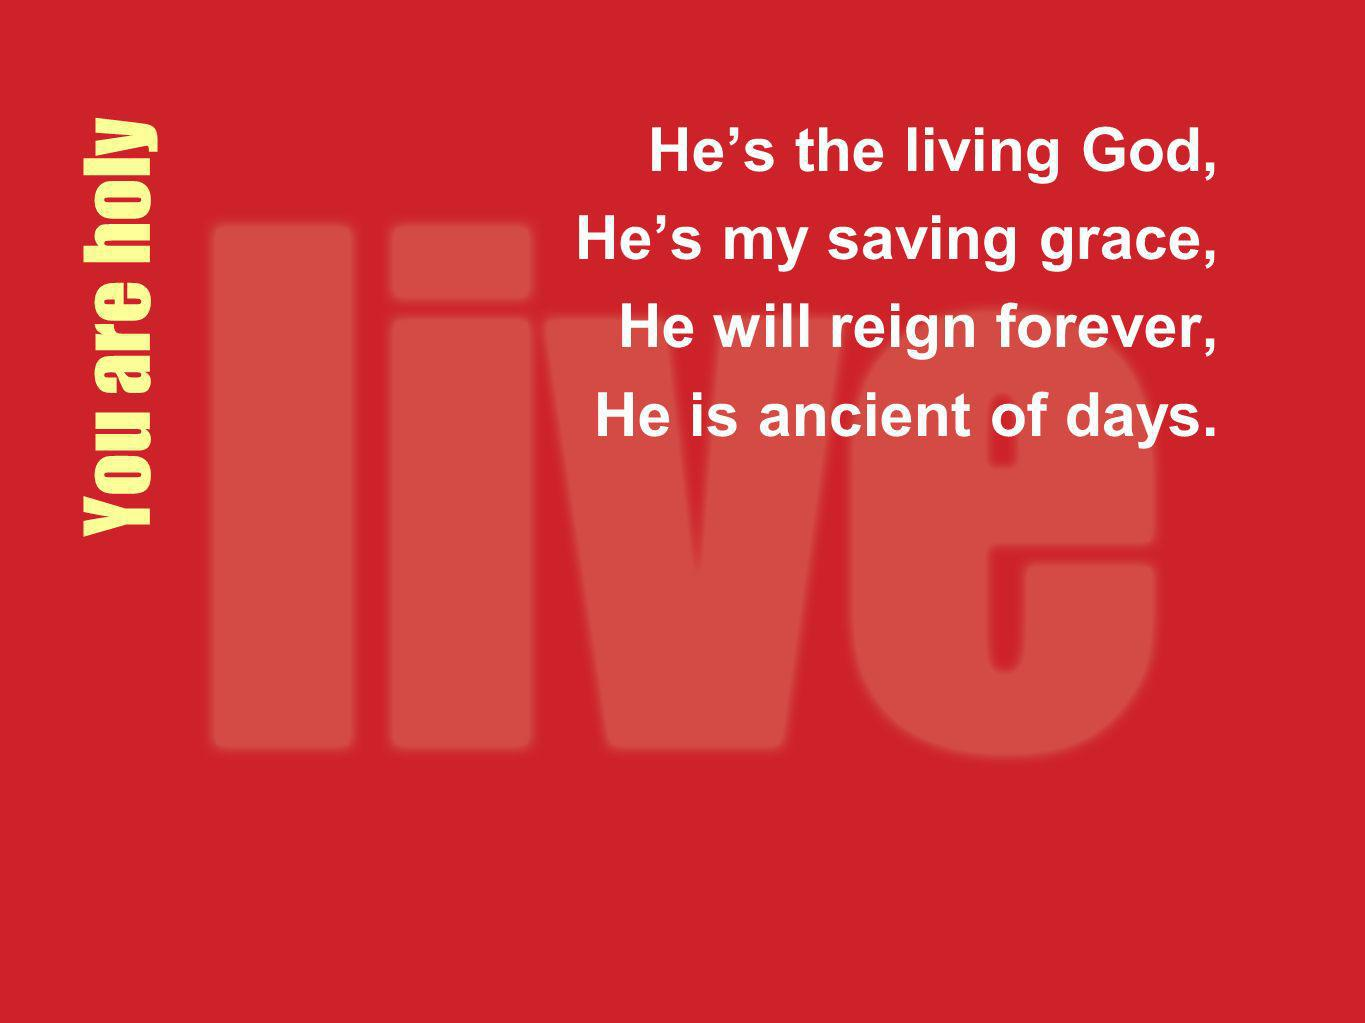 You are holy He's the living God, He's my saving grace,